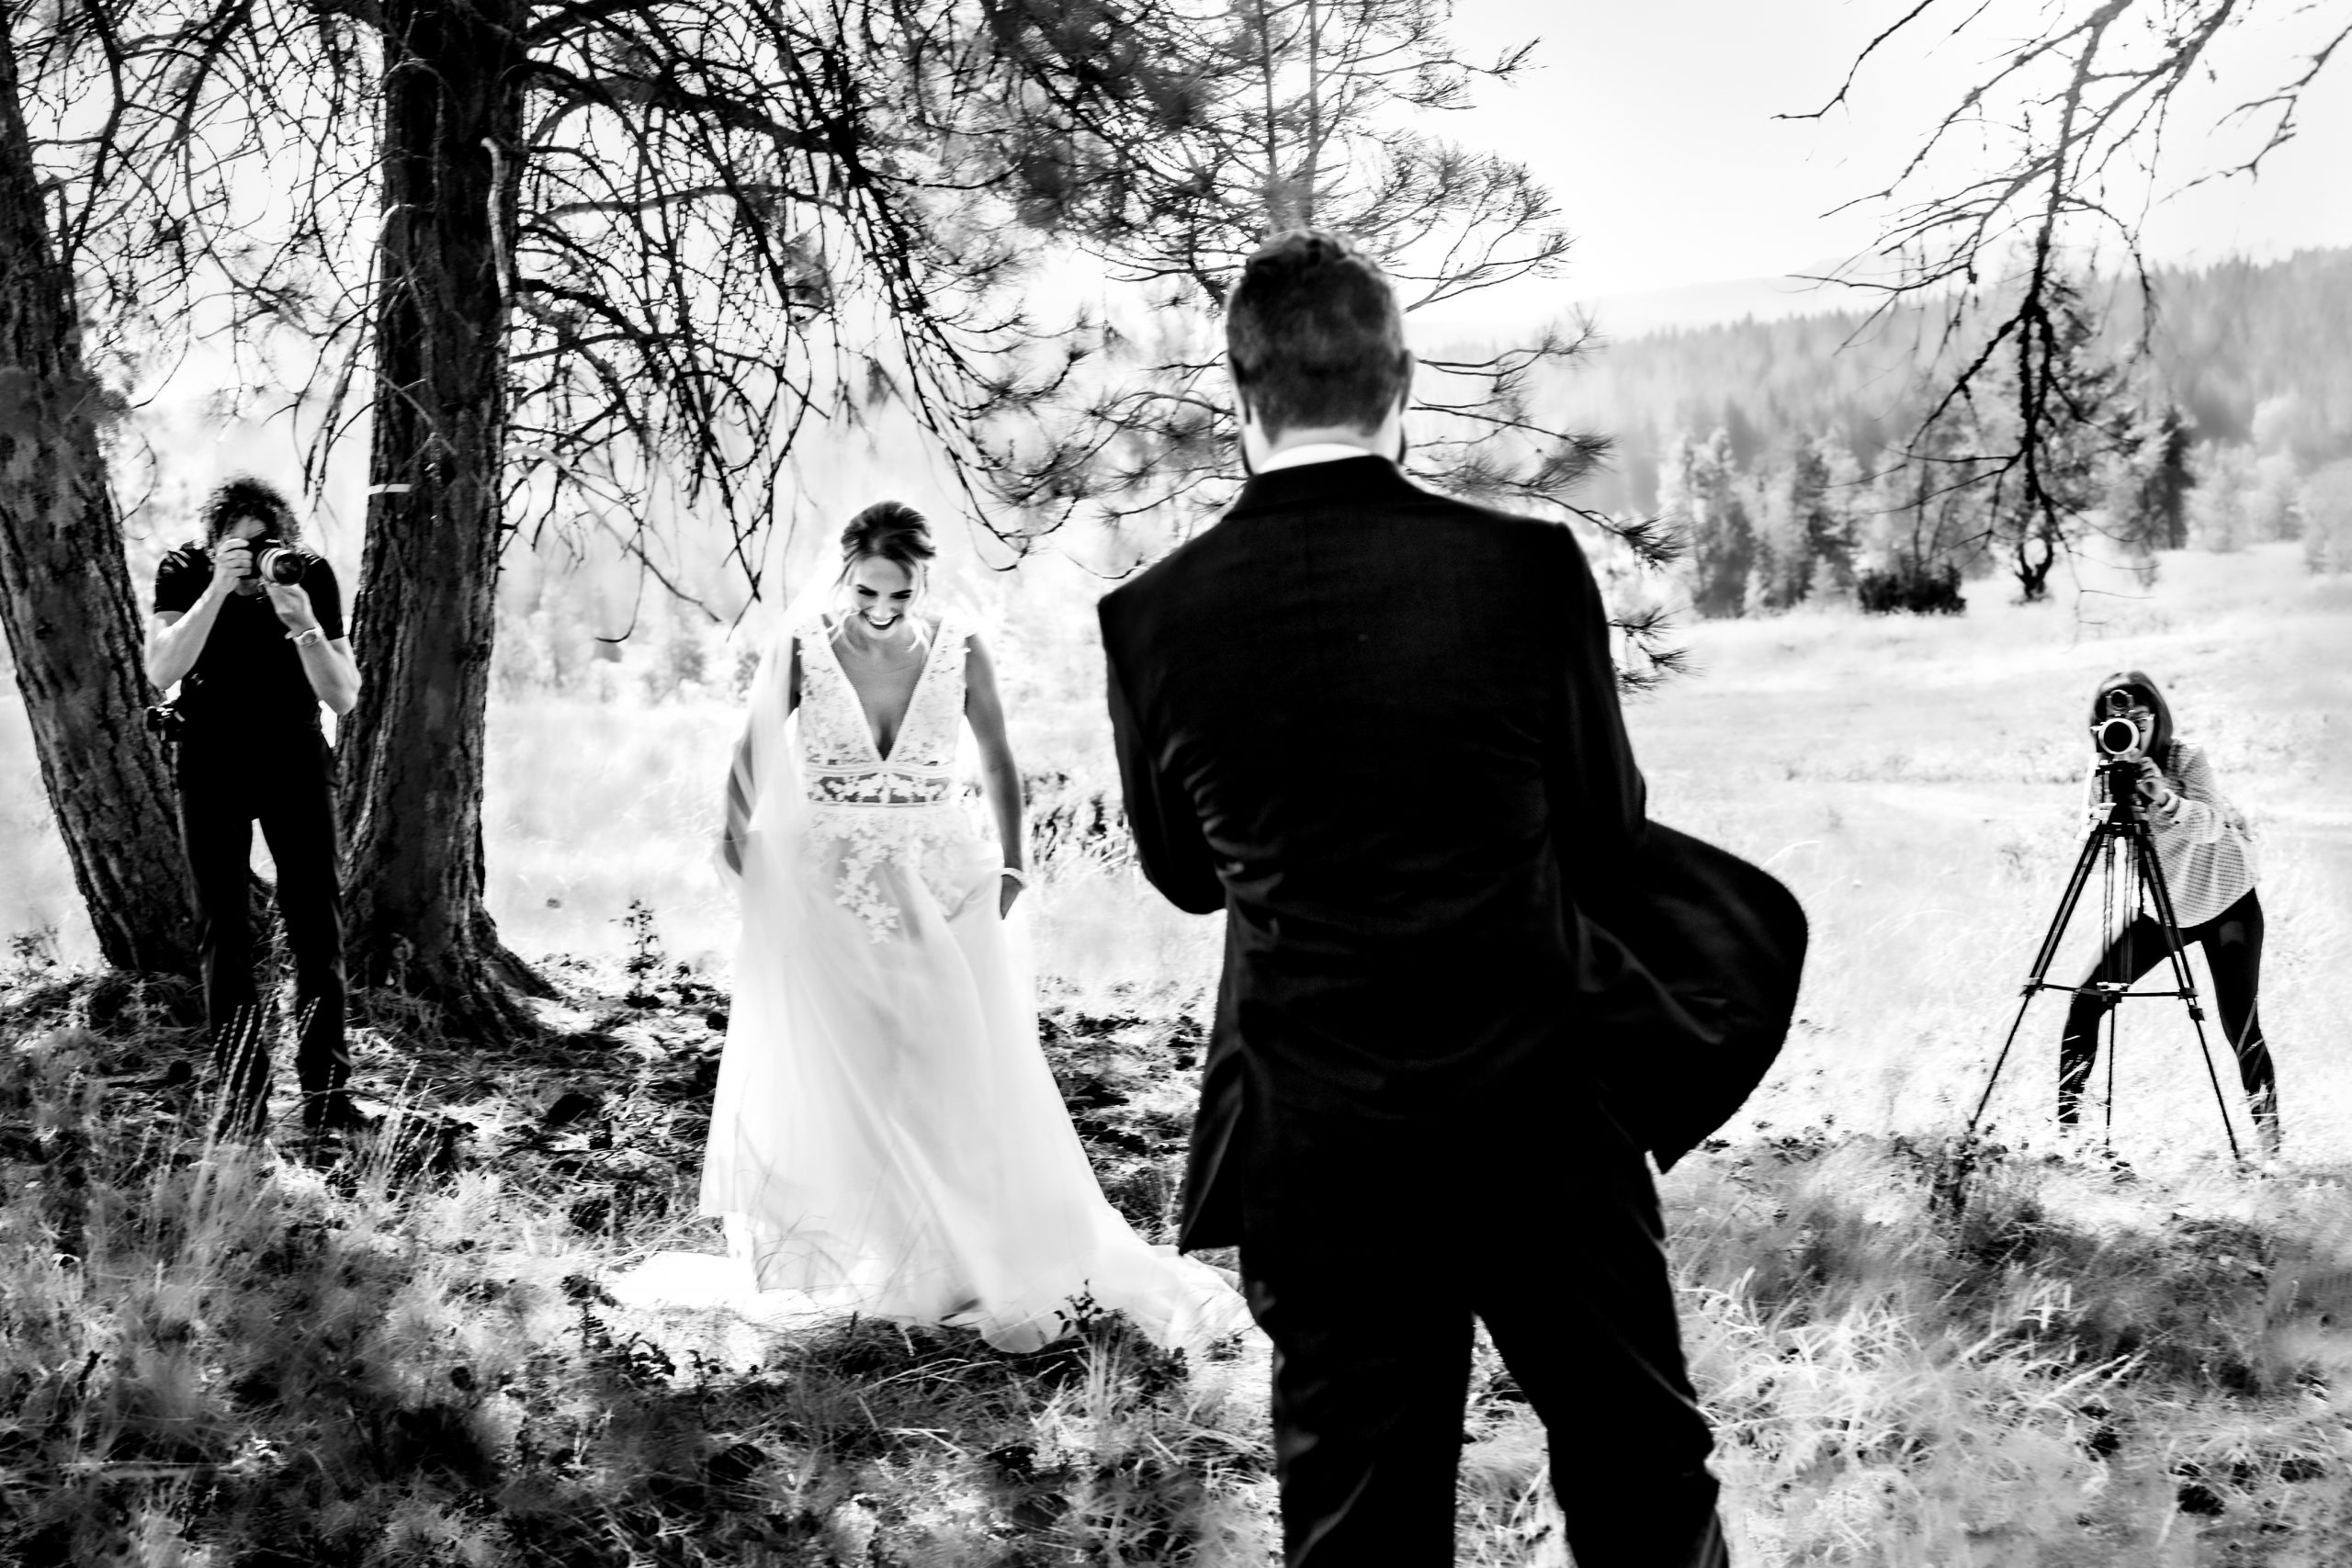 Photographers capture the moment the groom sees the bride for the first time.